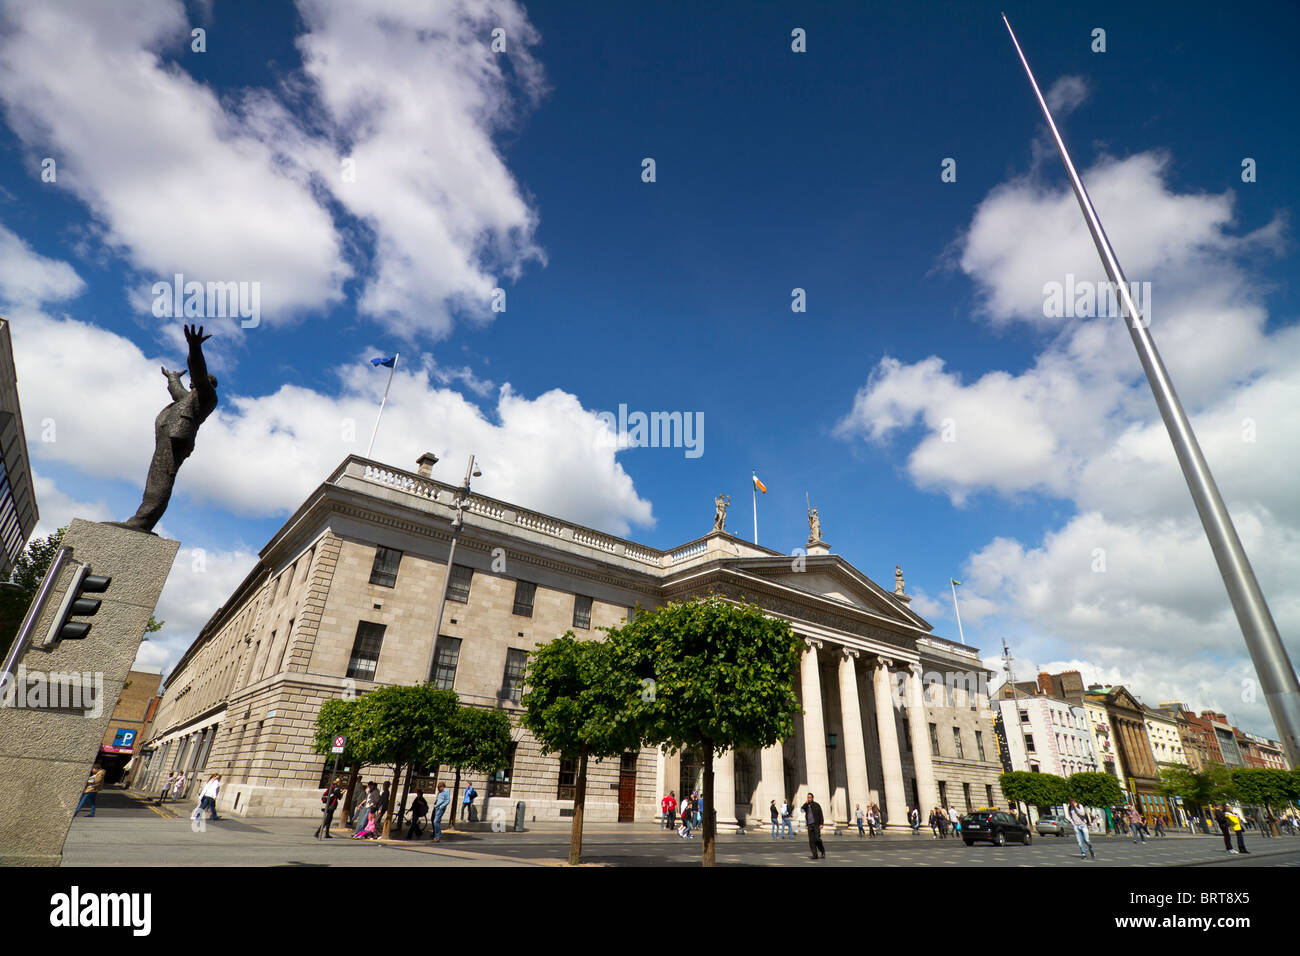 Dublin city centre with spire on O'Connell street, central Post office and monument of Jim Larkin - Stock Image